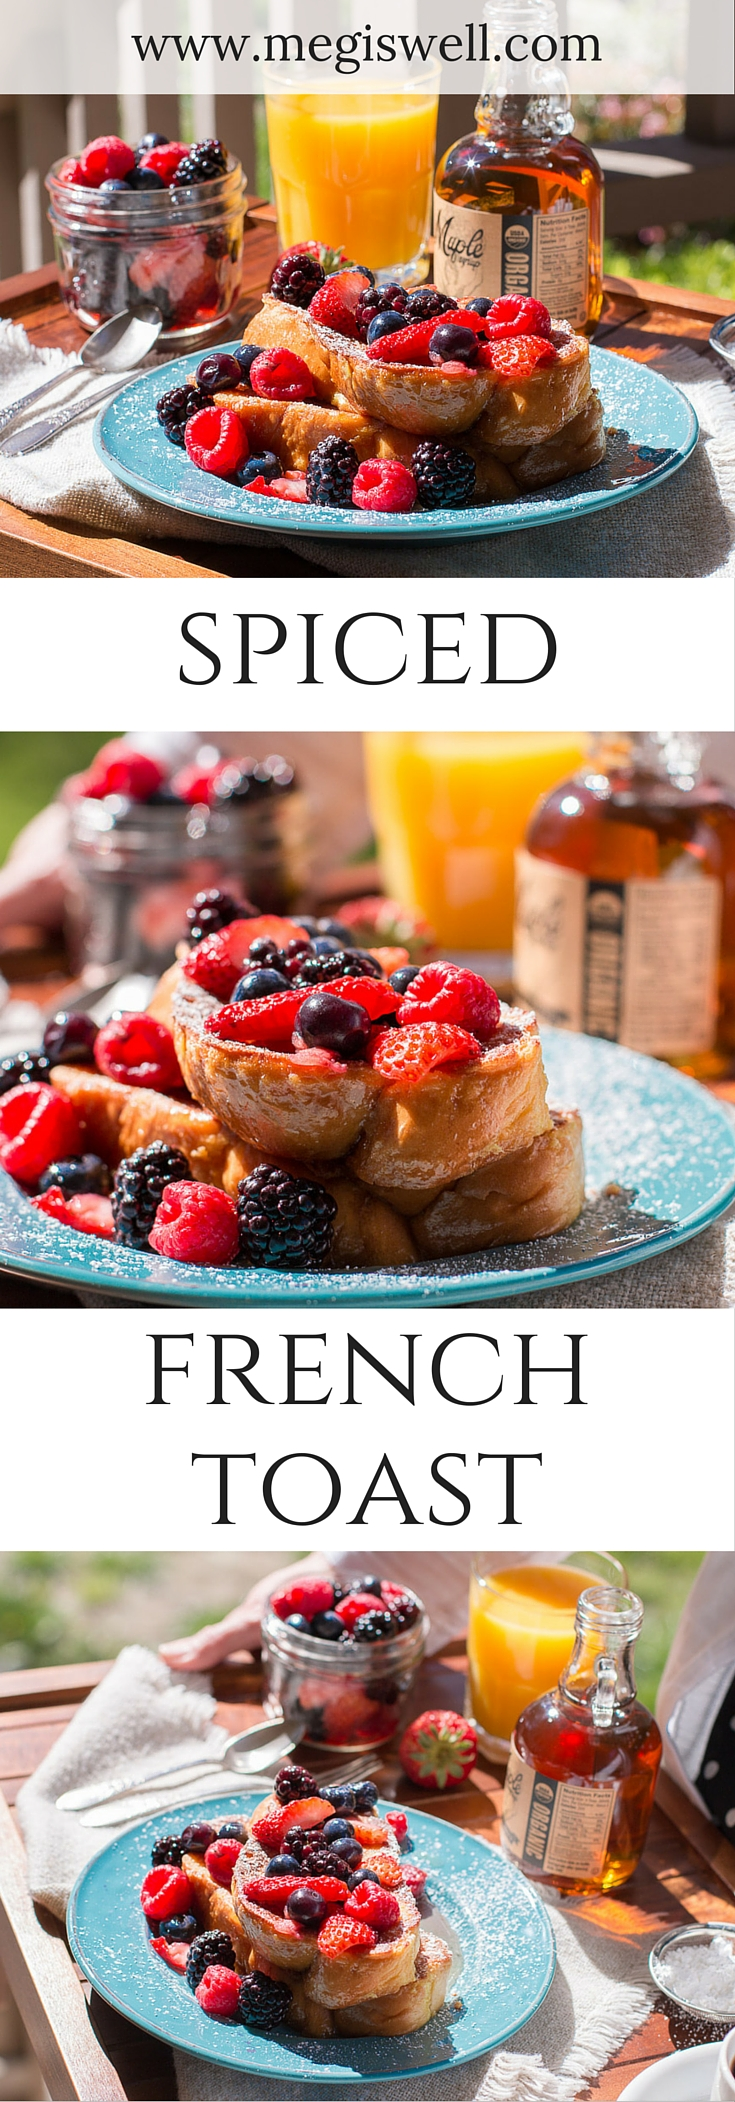 Cardamon, cloves, cinnamon, and turmeric are steeped in heavy cream to create a tasty batter for this Spiced French Toast. | www.megiswell.com